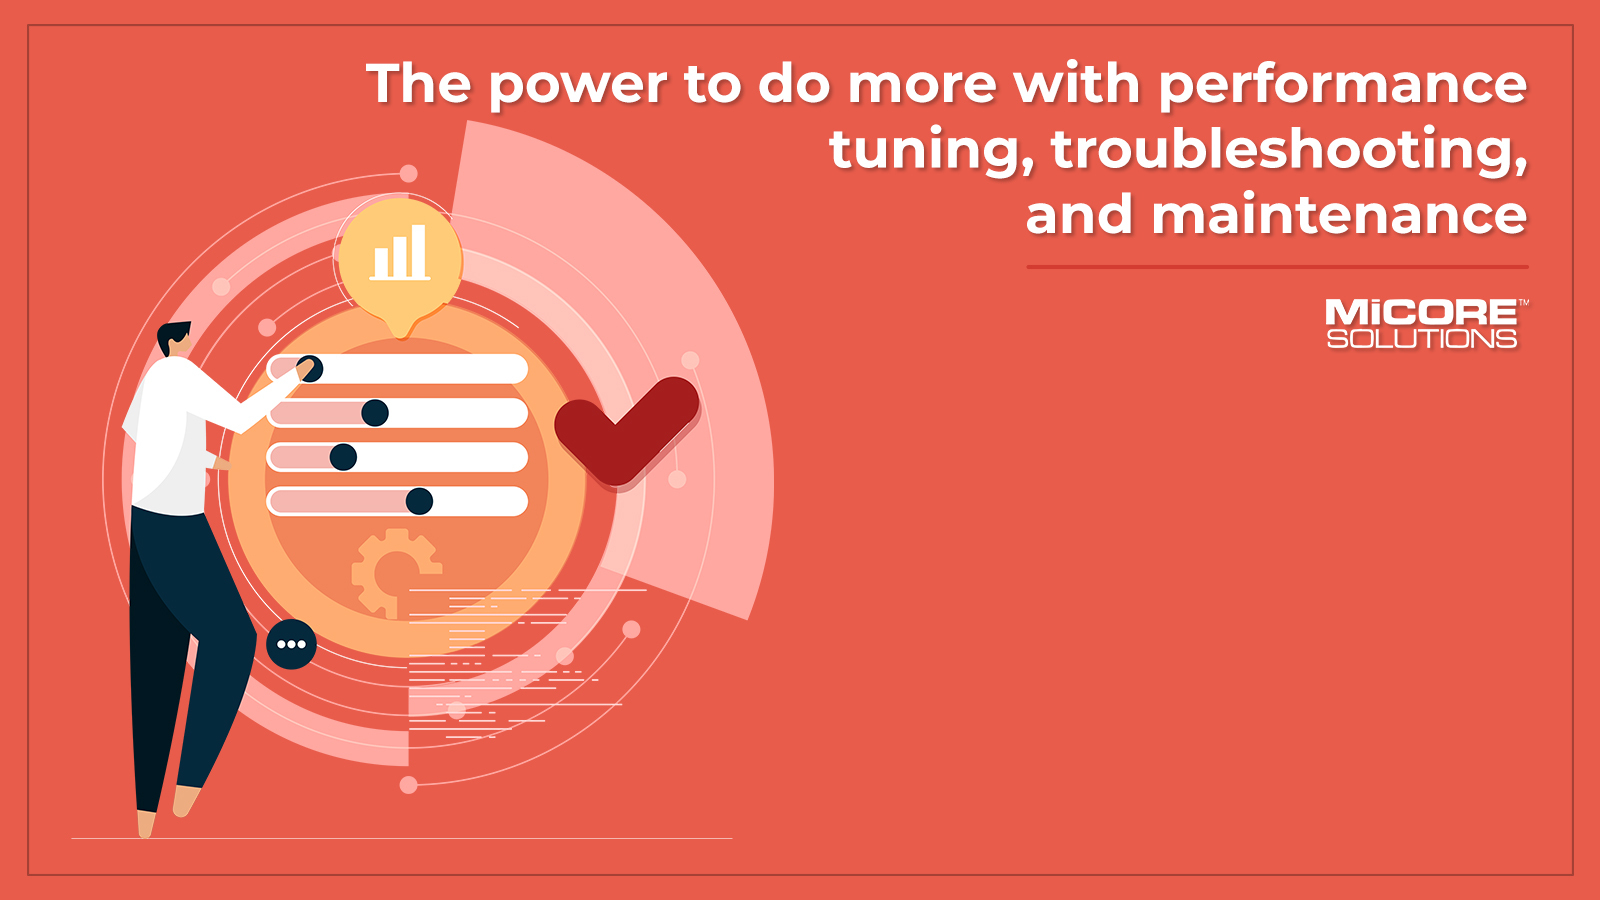 2. The power to do more with performance tuning, troubleshooting, and maintenance